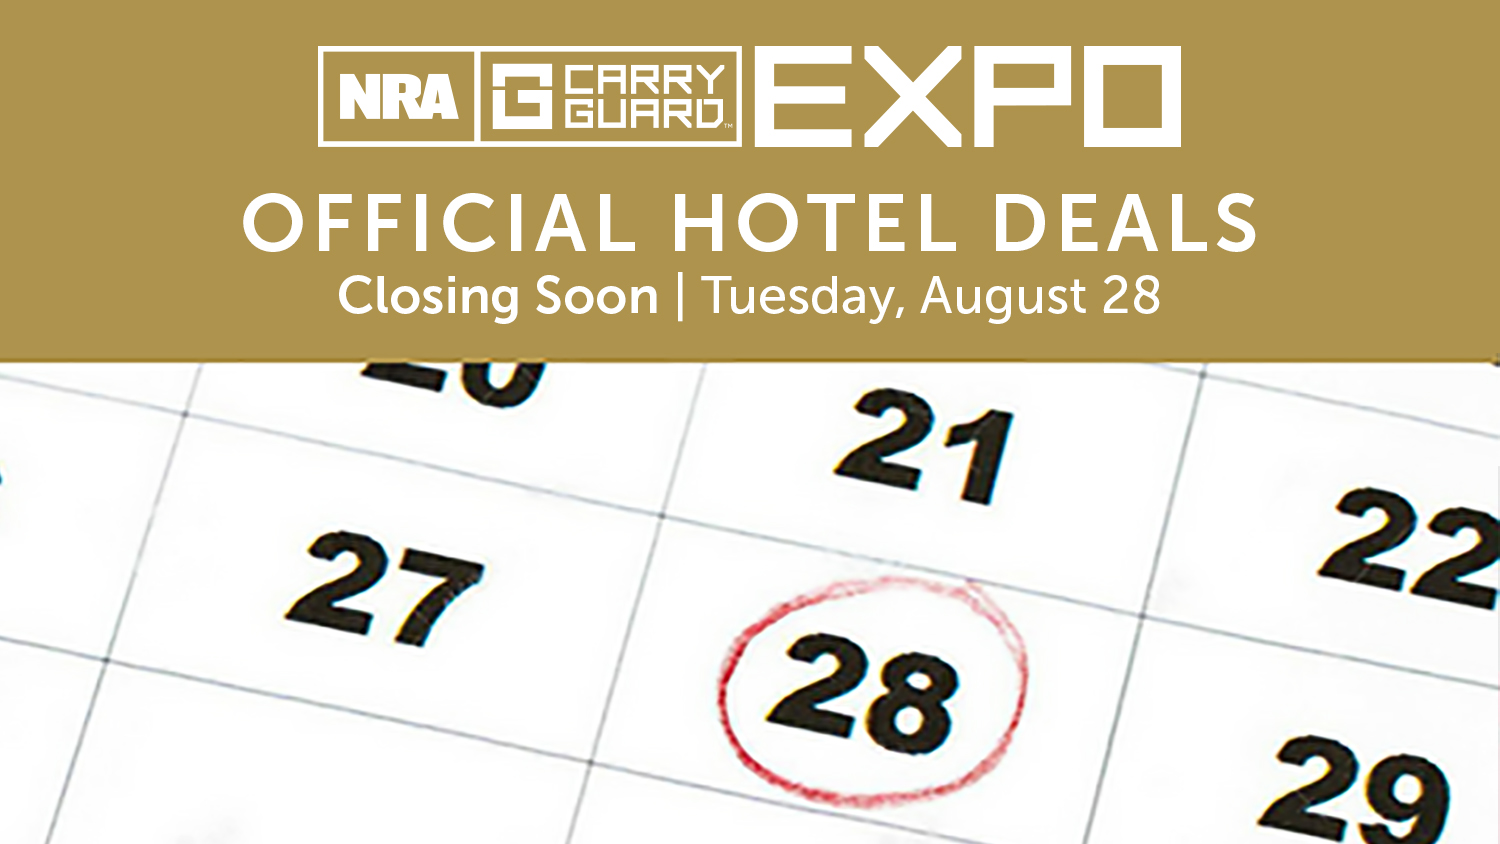 NRA Carry Guard Expo Hotel Deals Closing Soon